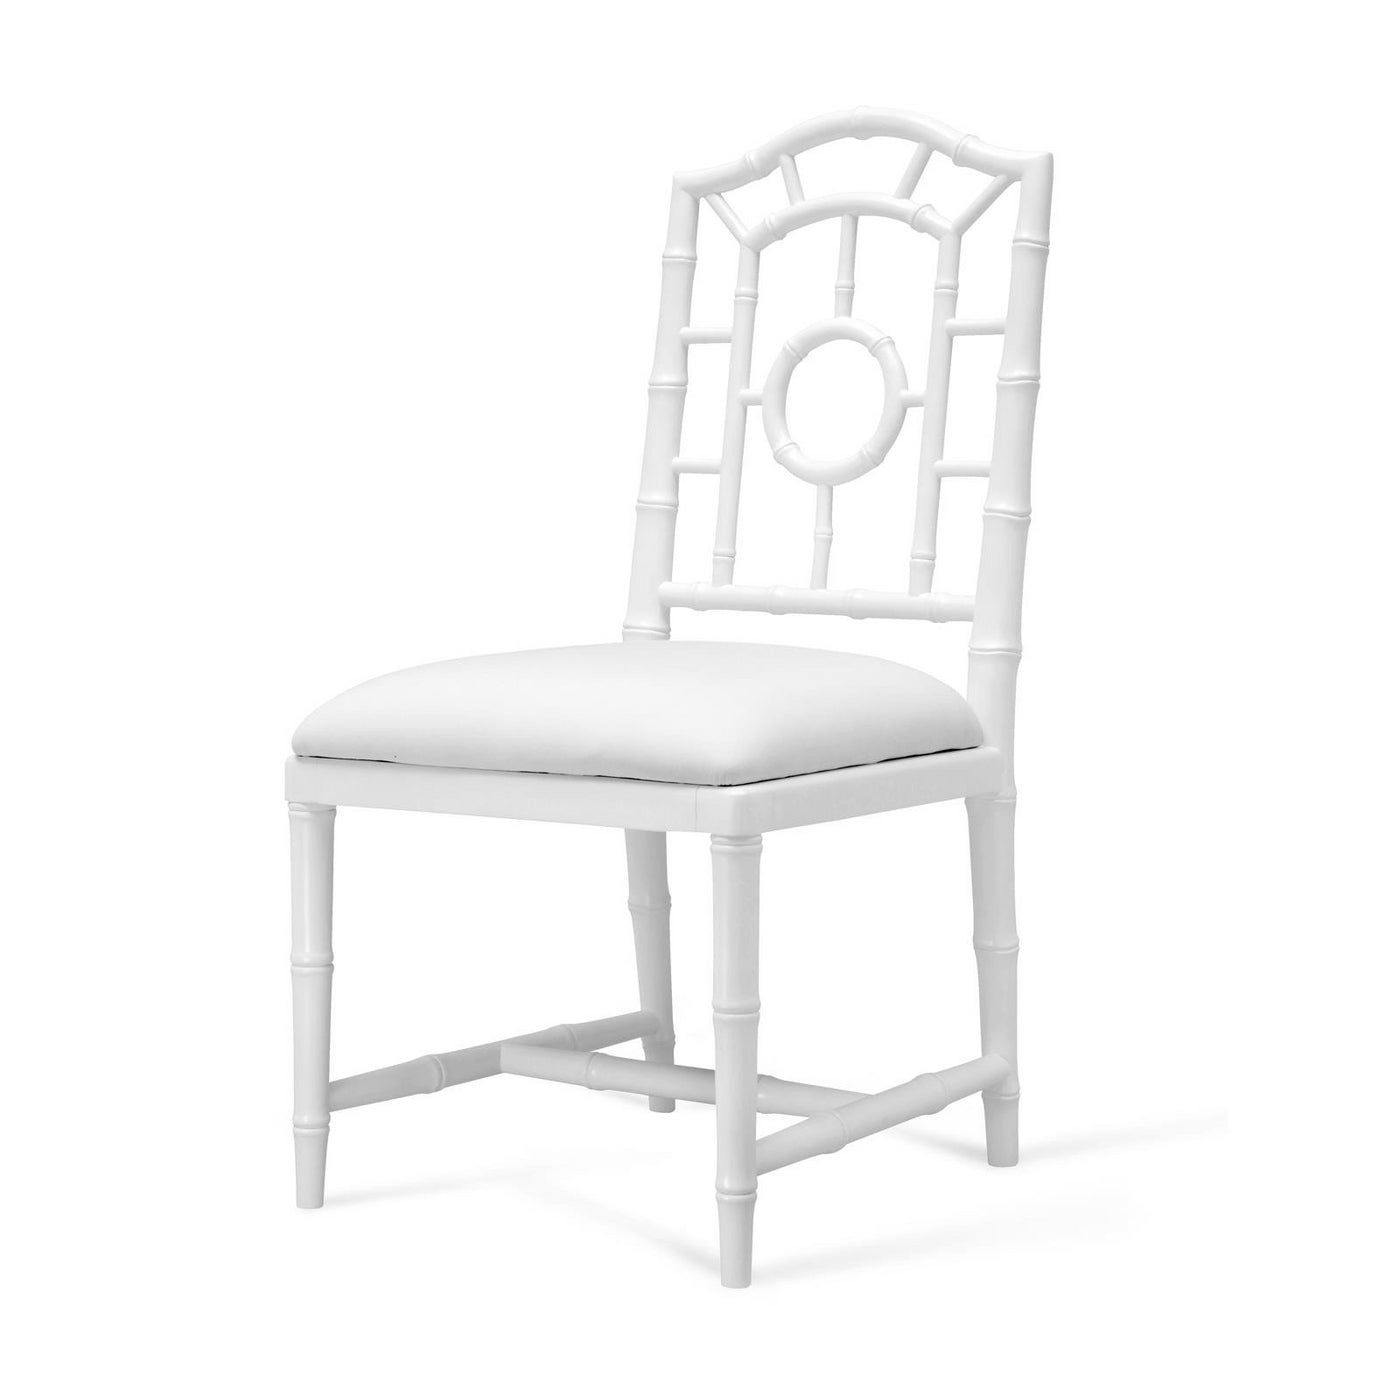 Bungalow 5 Chloe Side Chair White CHL-550-09